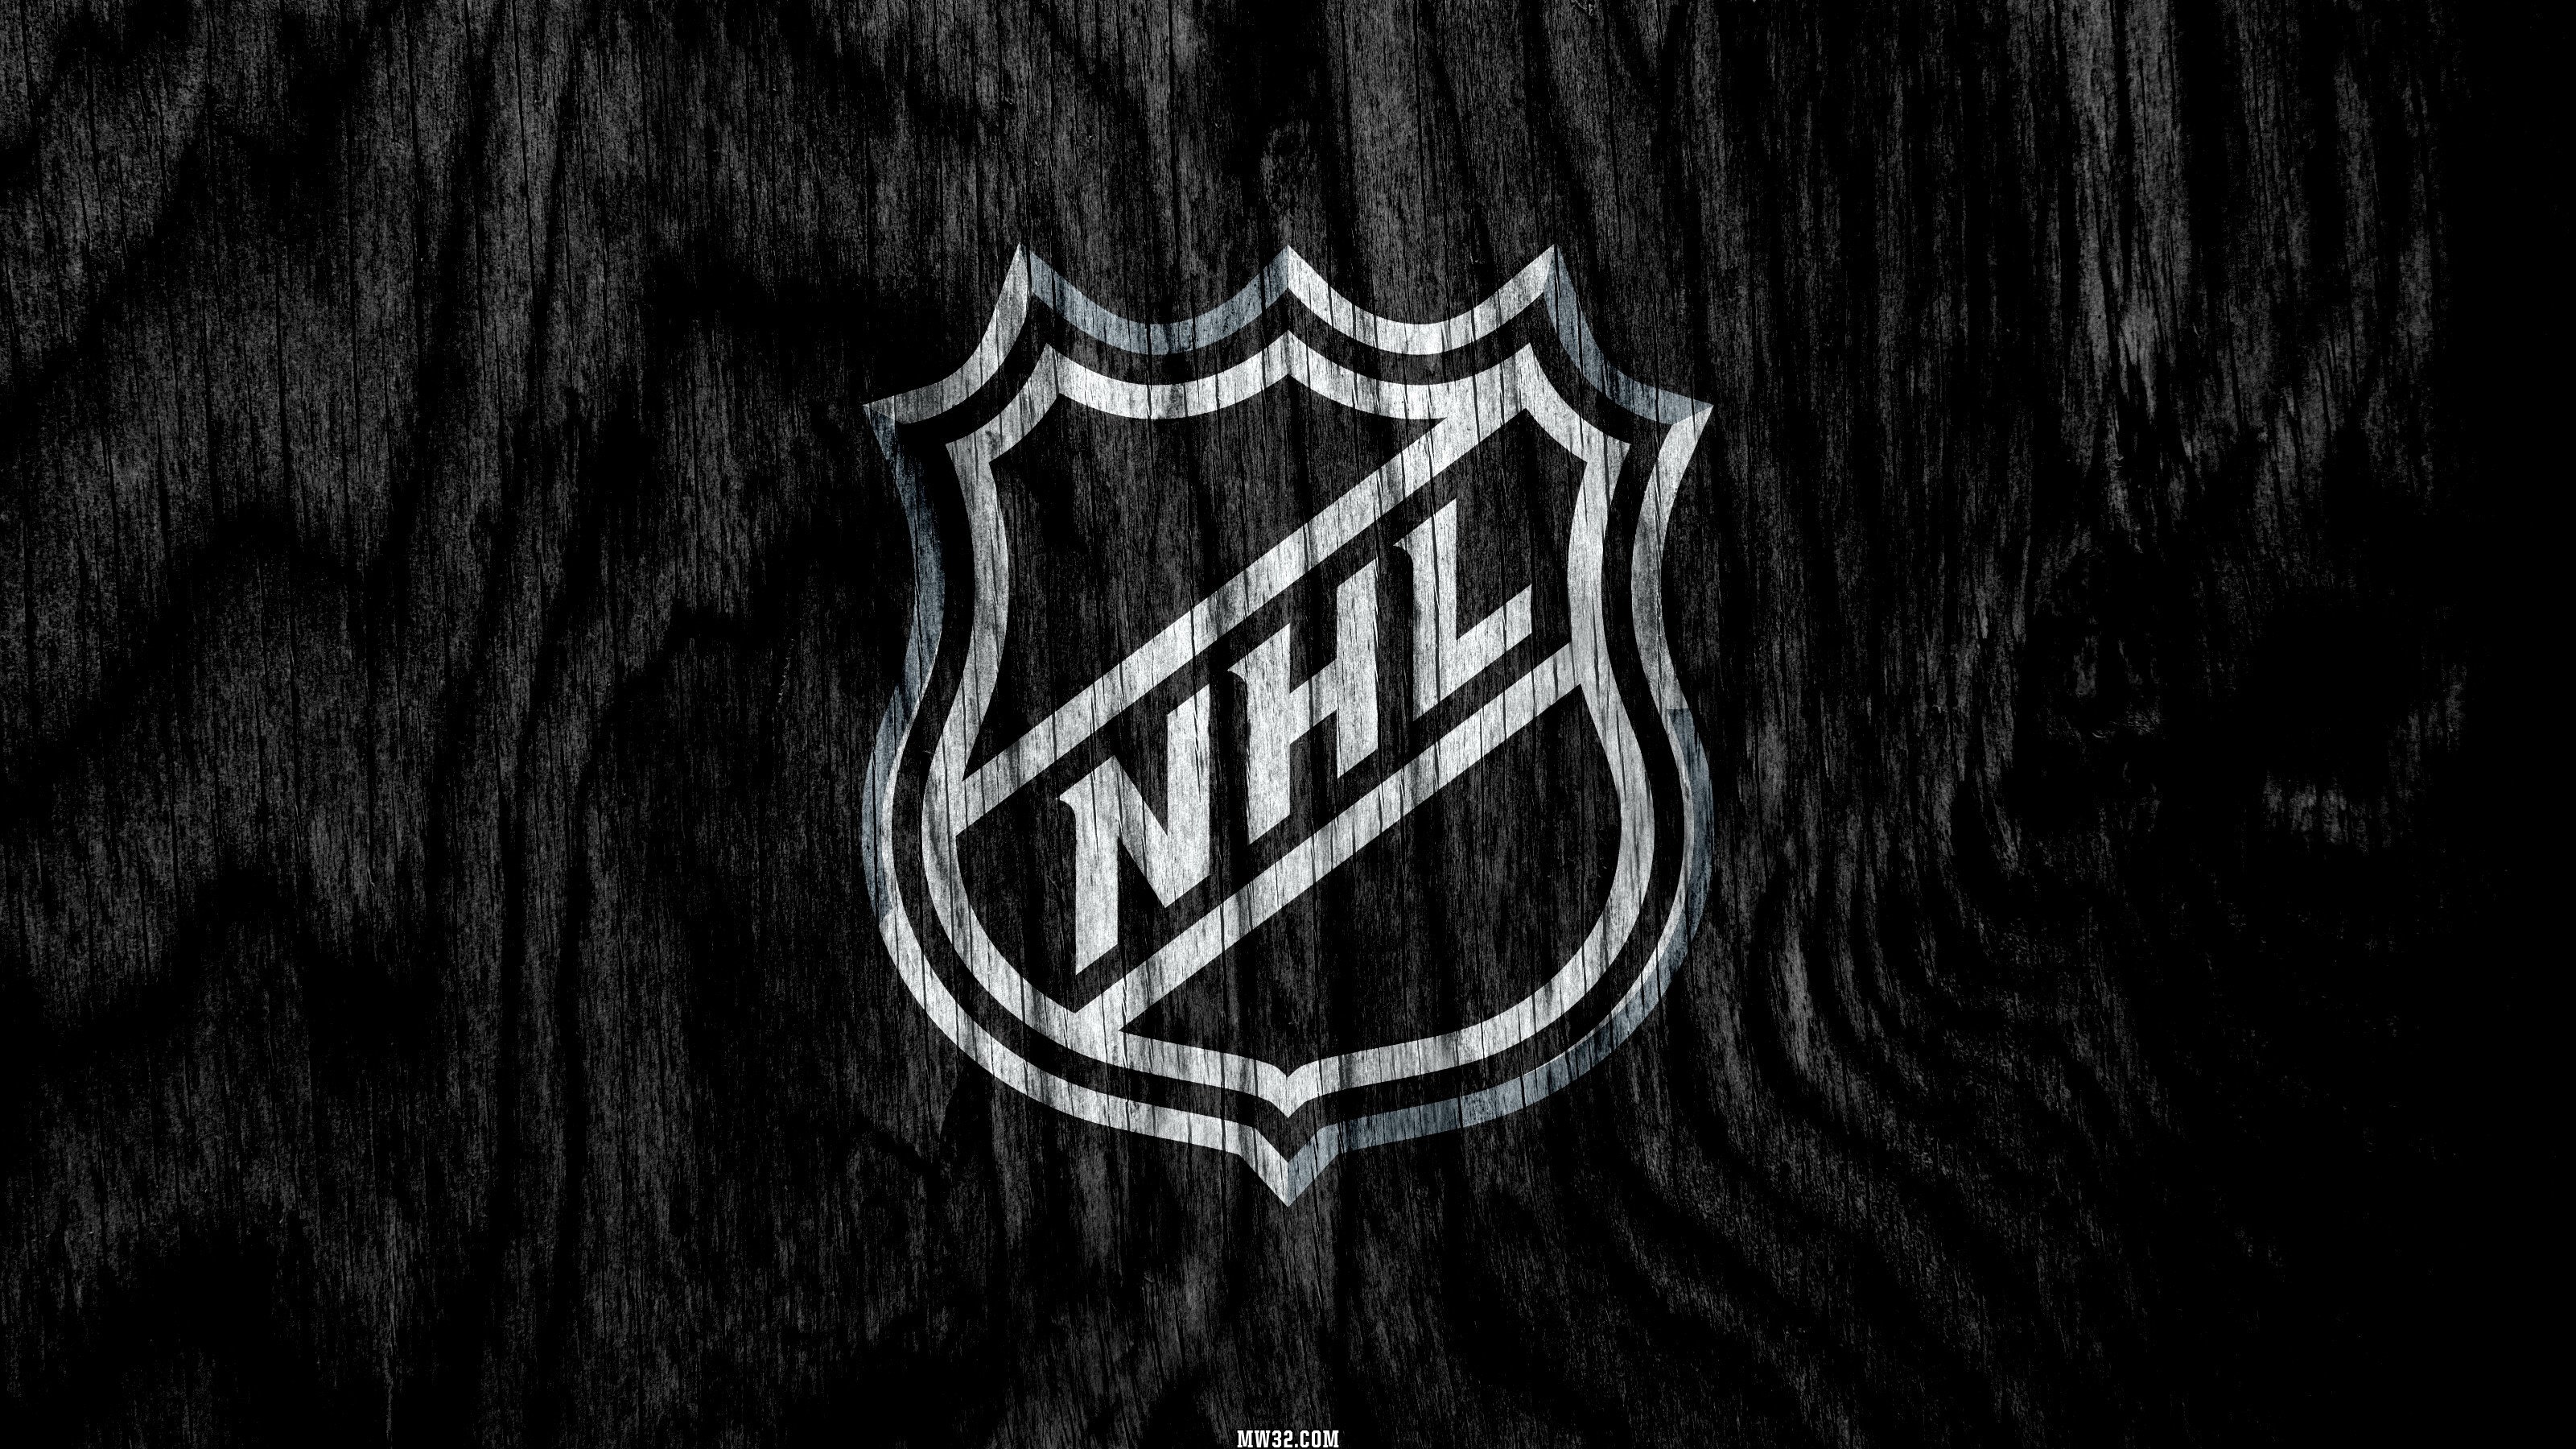 Nhl logo wallpaper 72 pictures - Nhl hockey wallpapers ...